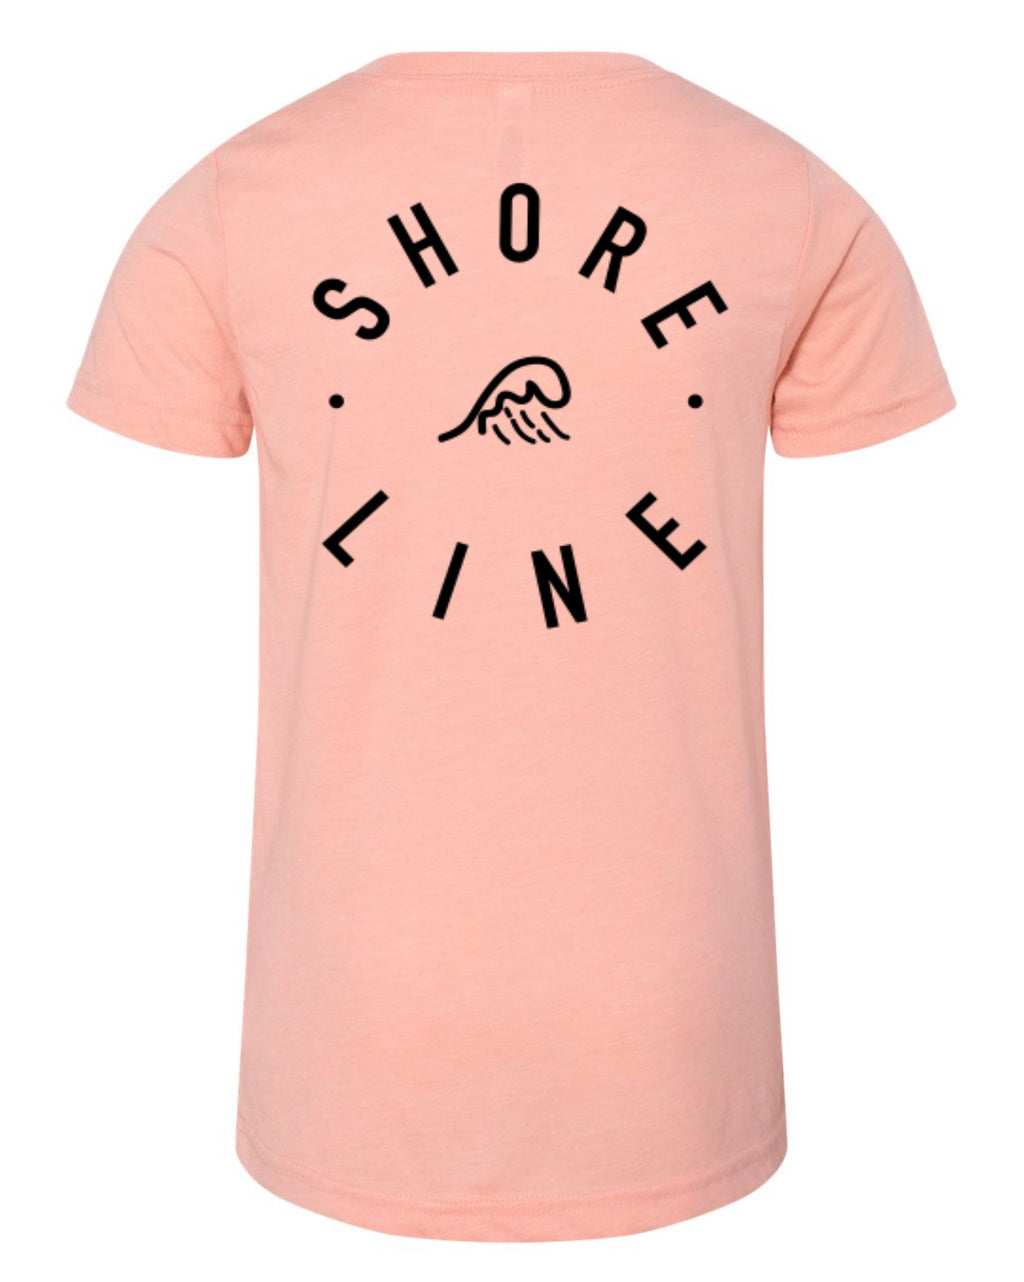 Shoreline Tee (Youth)